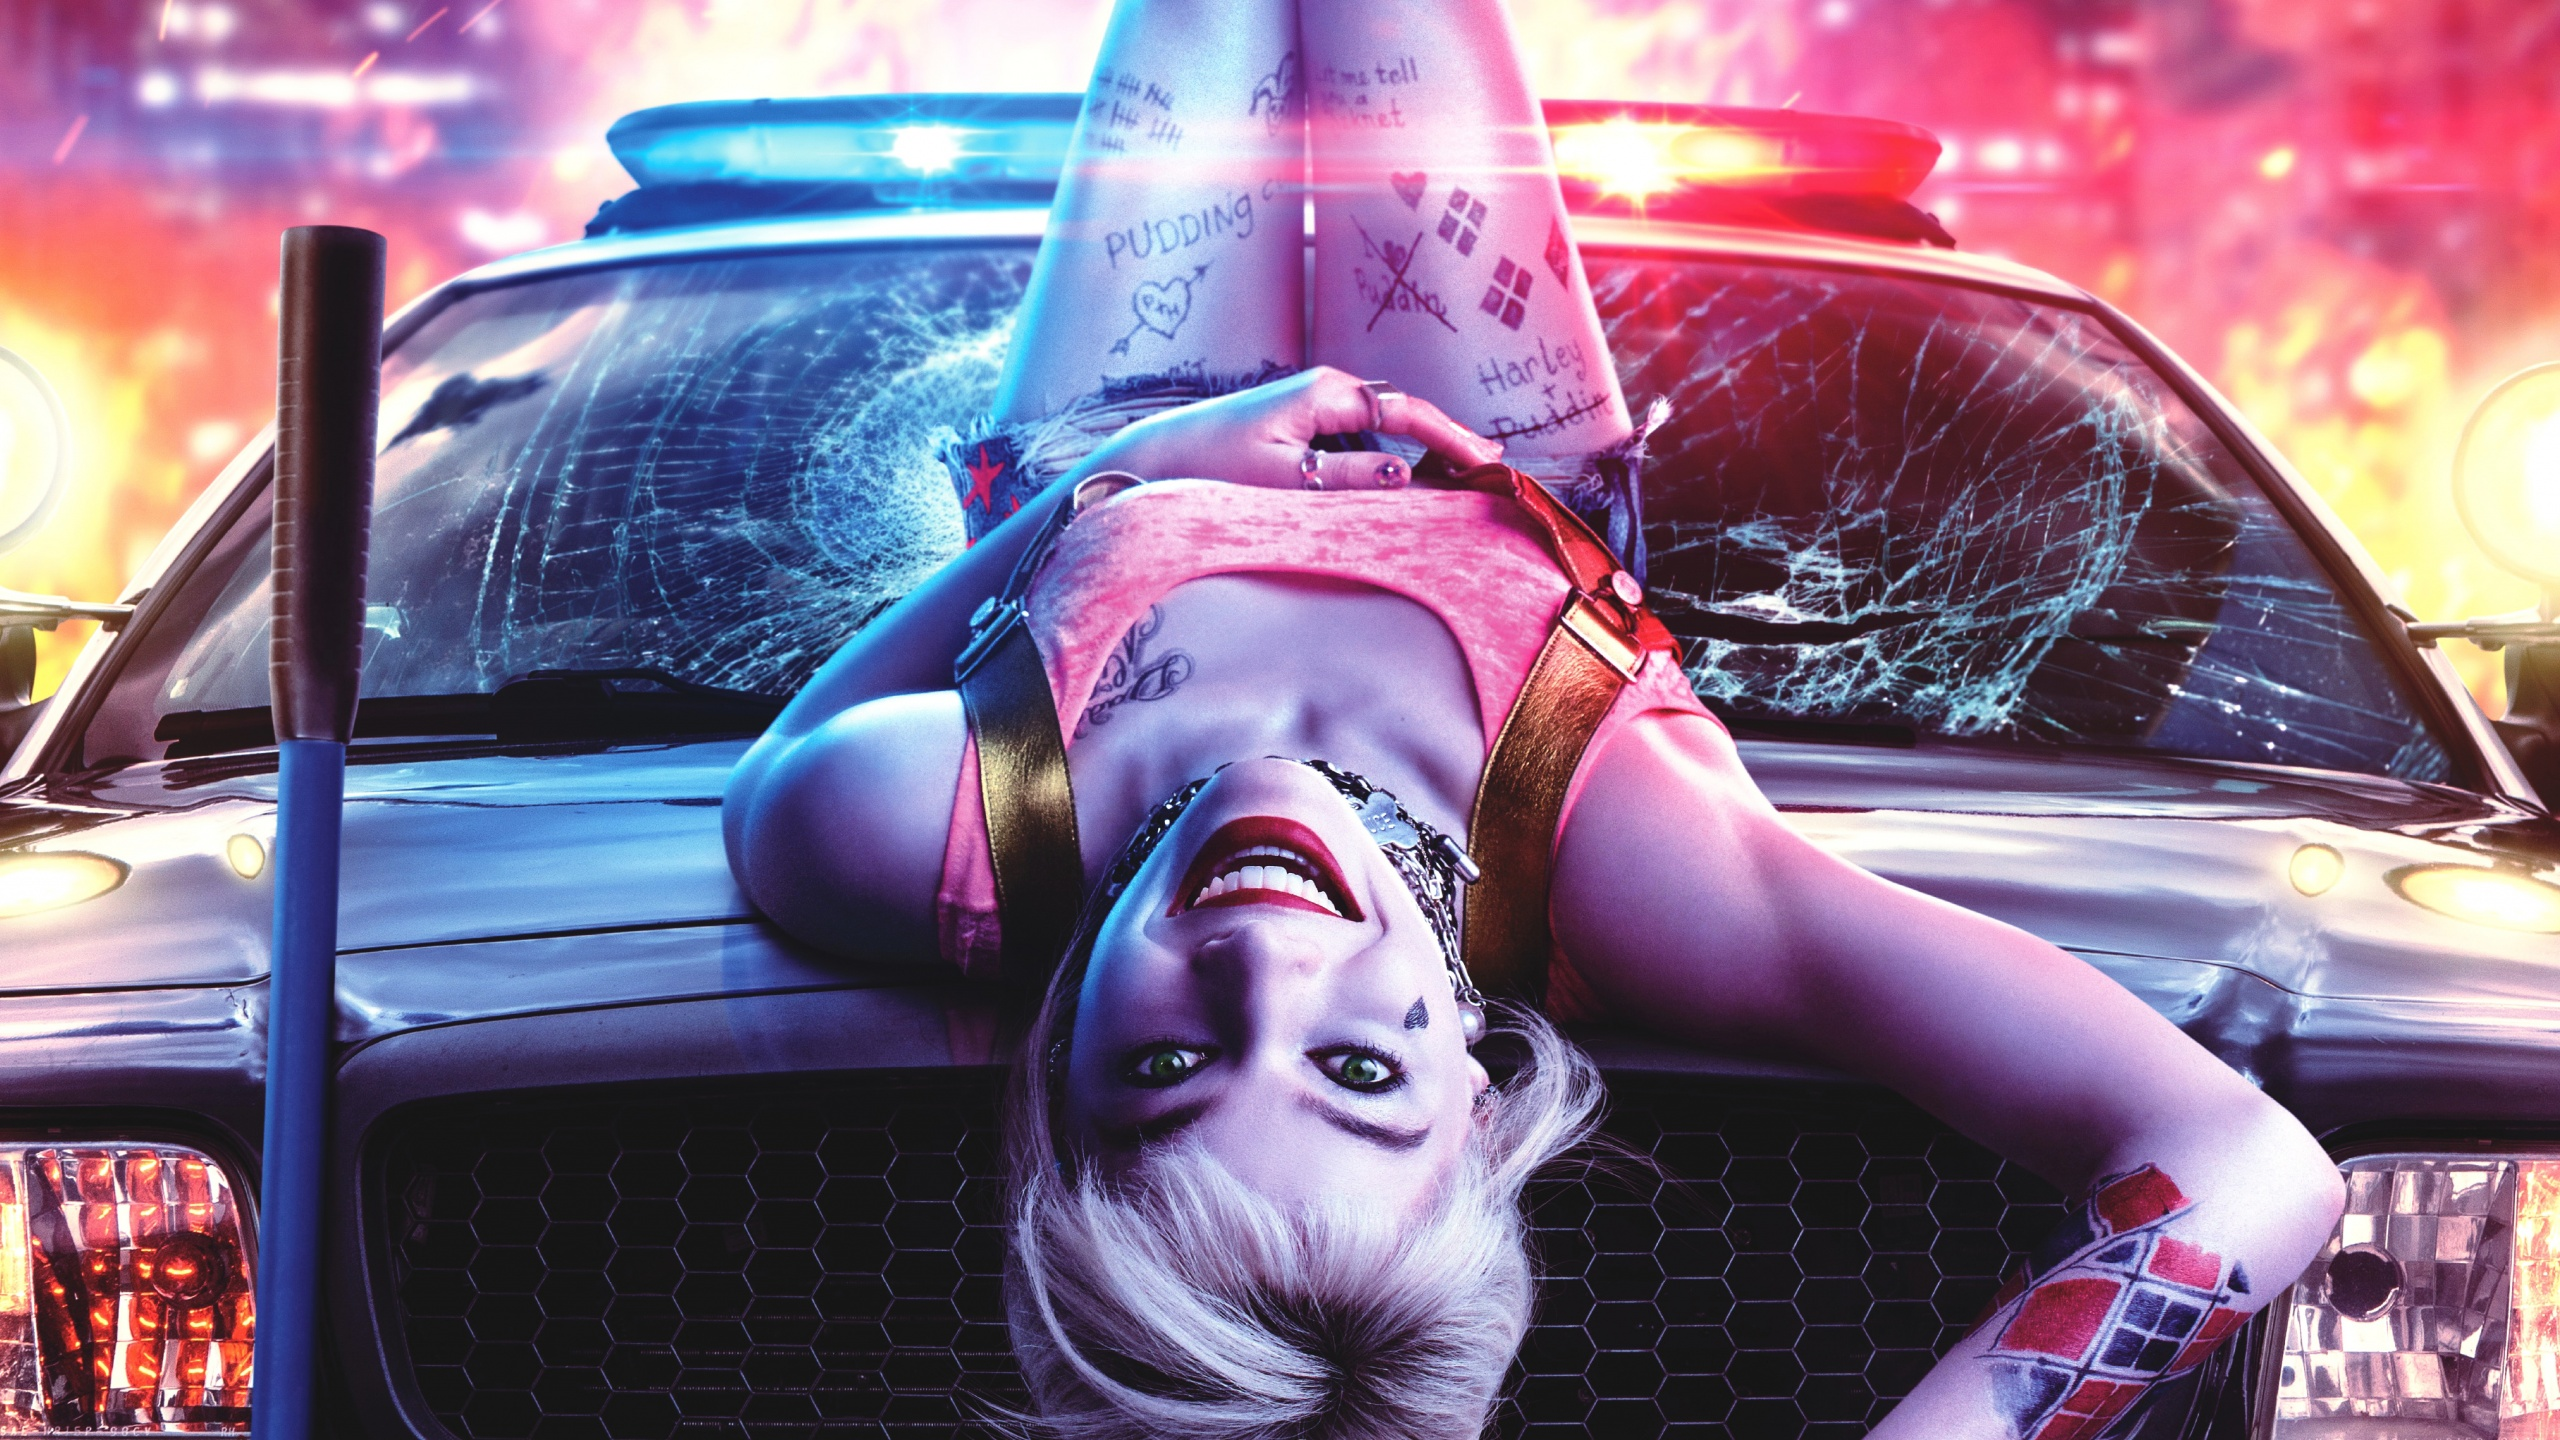 Harley Quinn 4k Wallpaper Birds Of Prey Margot Robbie Dc Comics 2020 Movies 2195